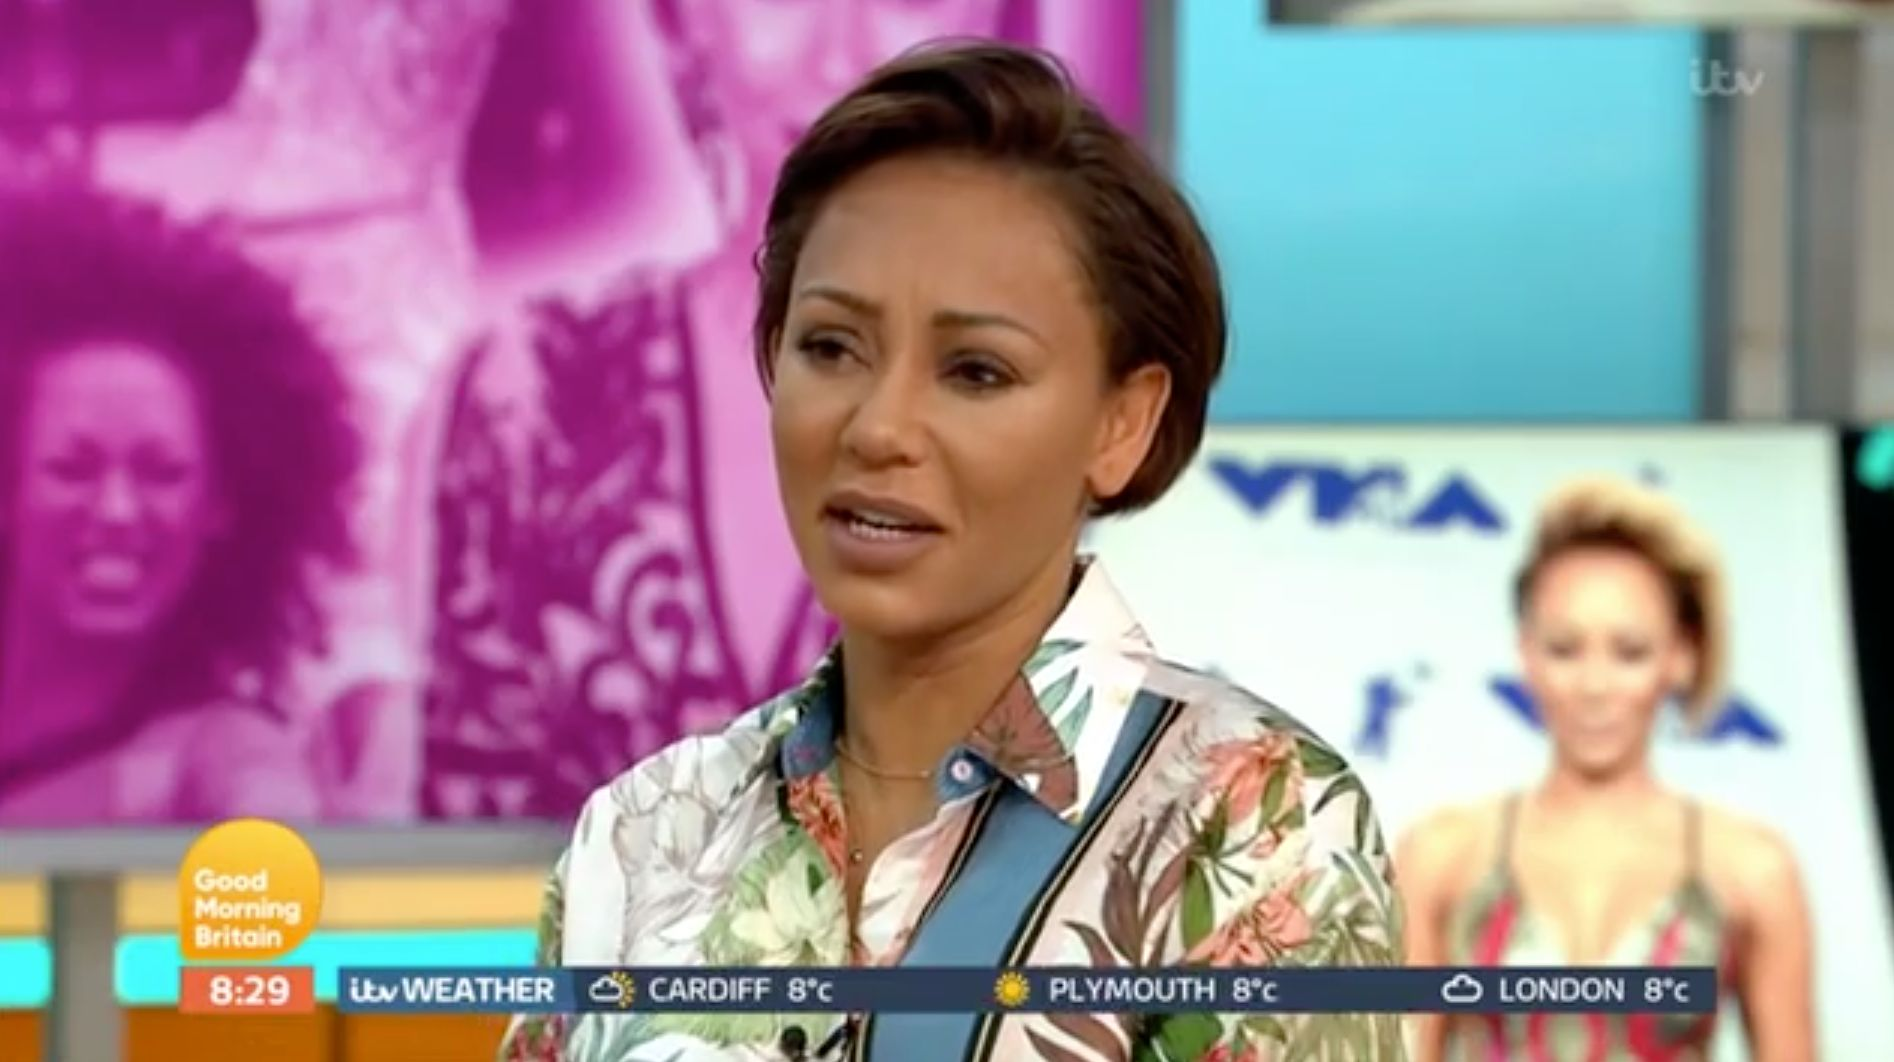 Mel B Takes Issue As 'Good Morning Britain' Reads Out 'Right To Reply' From Her